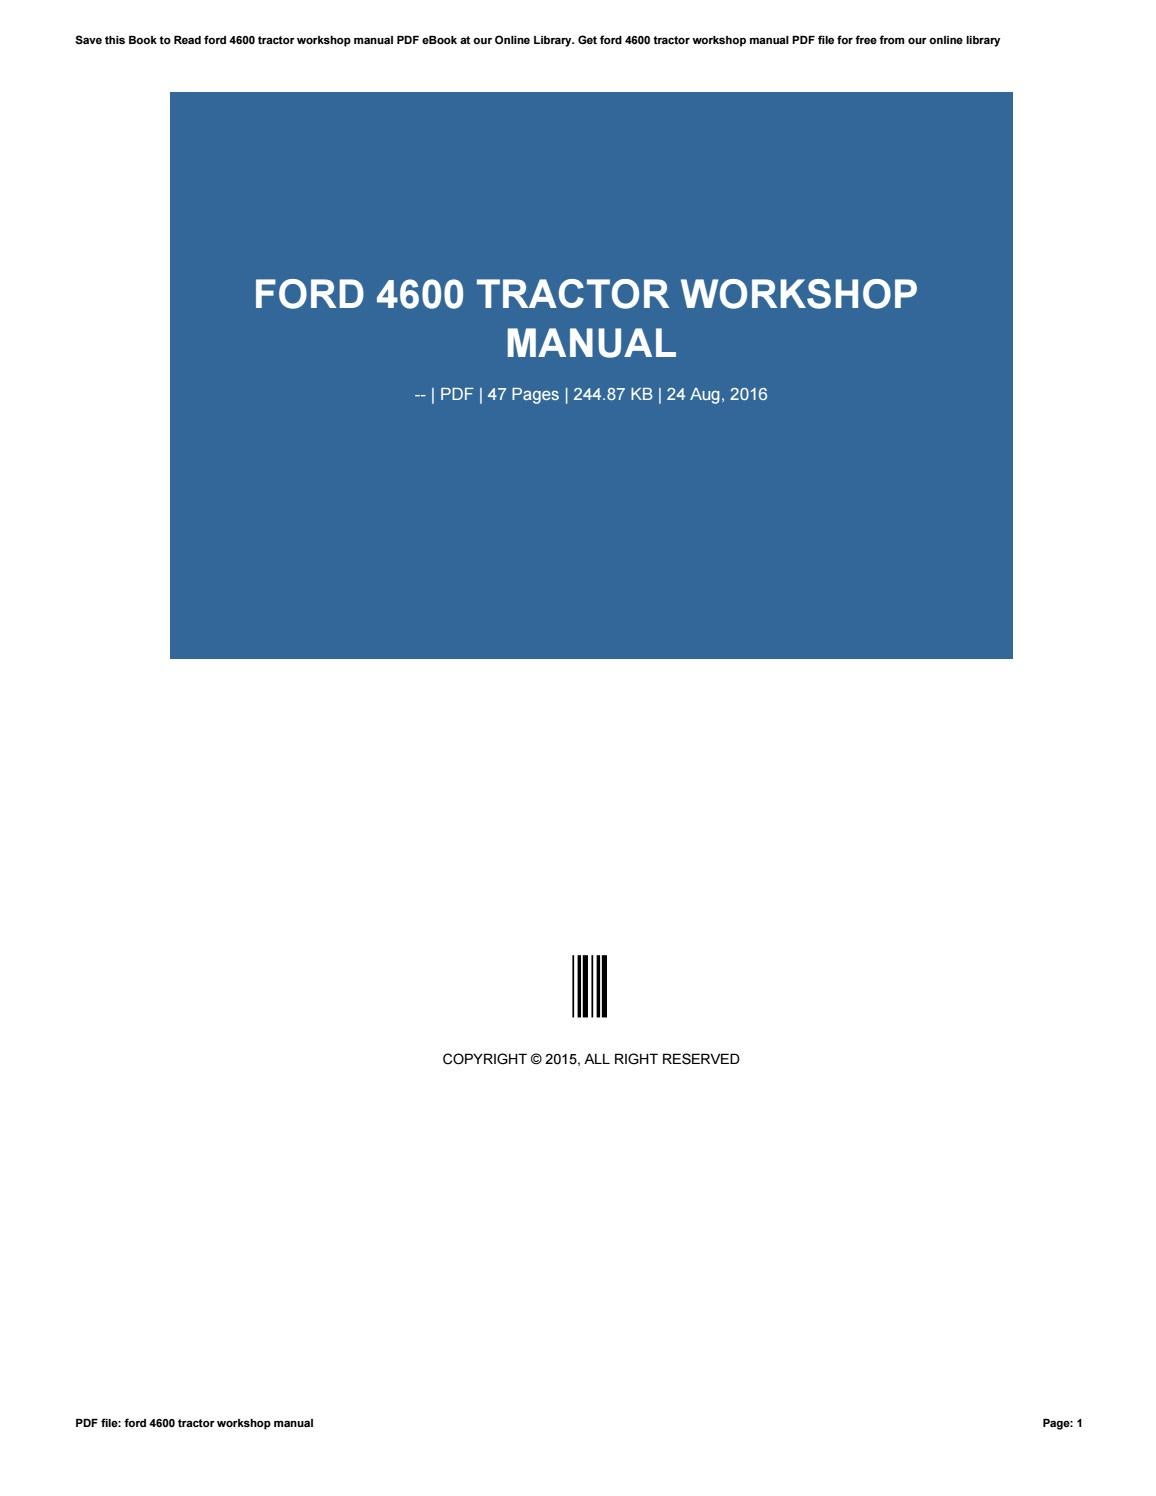 ford 4600 tractor manual free